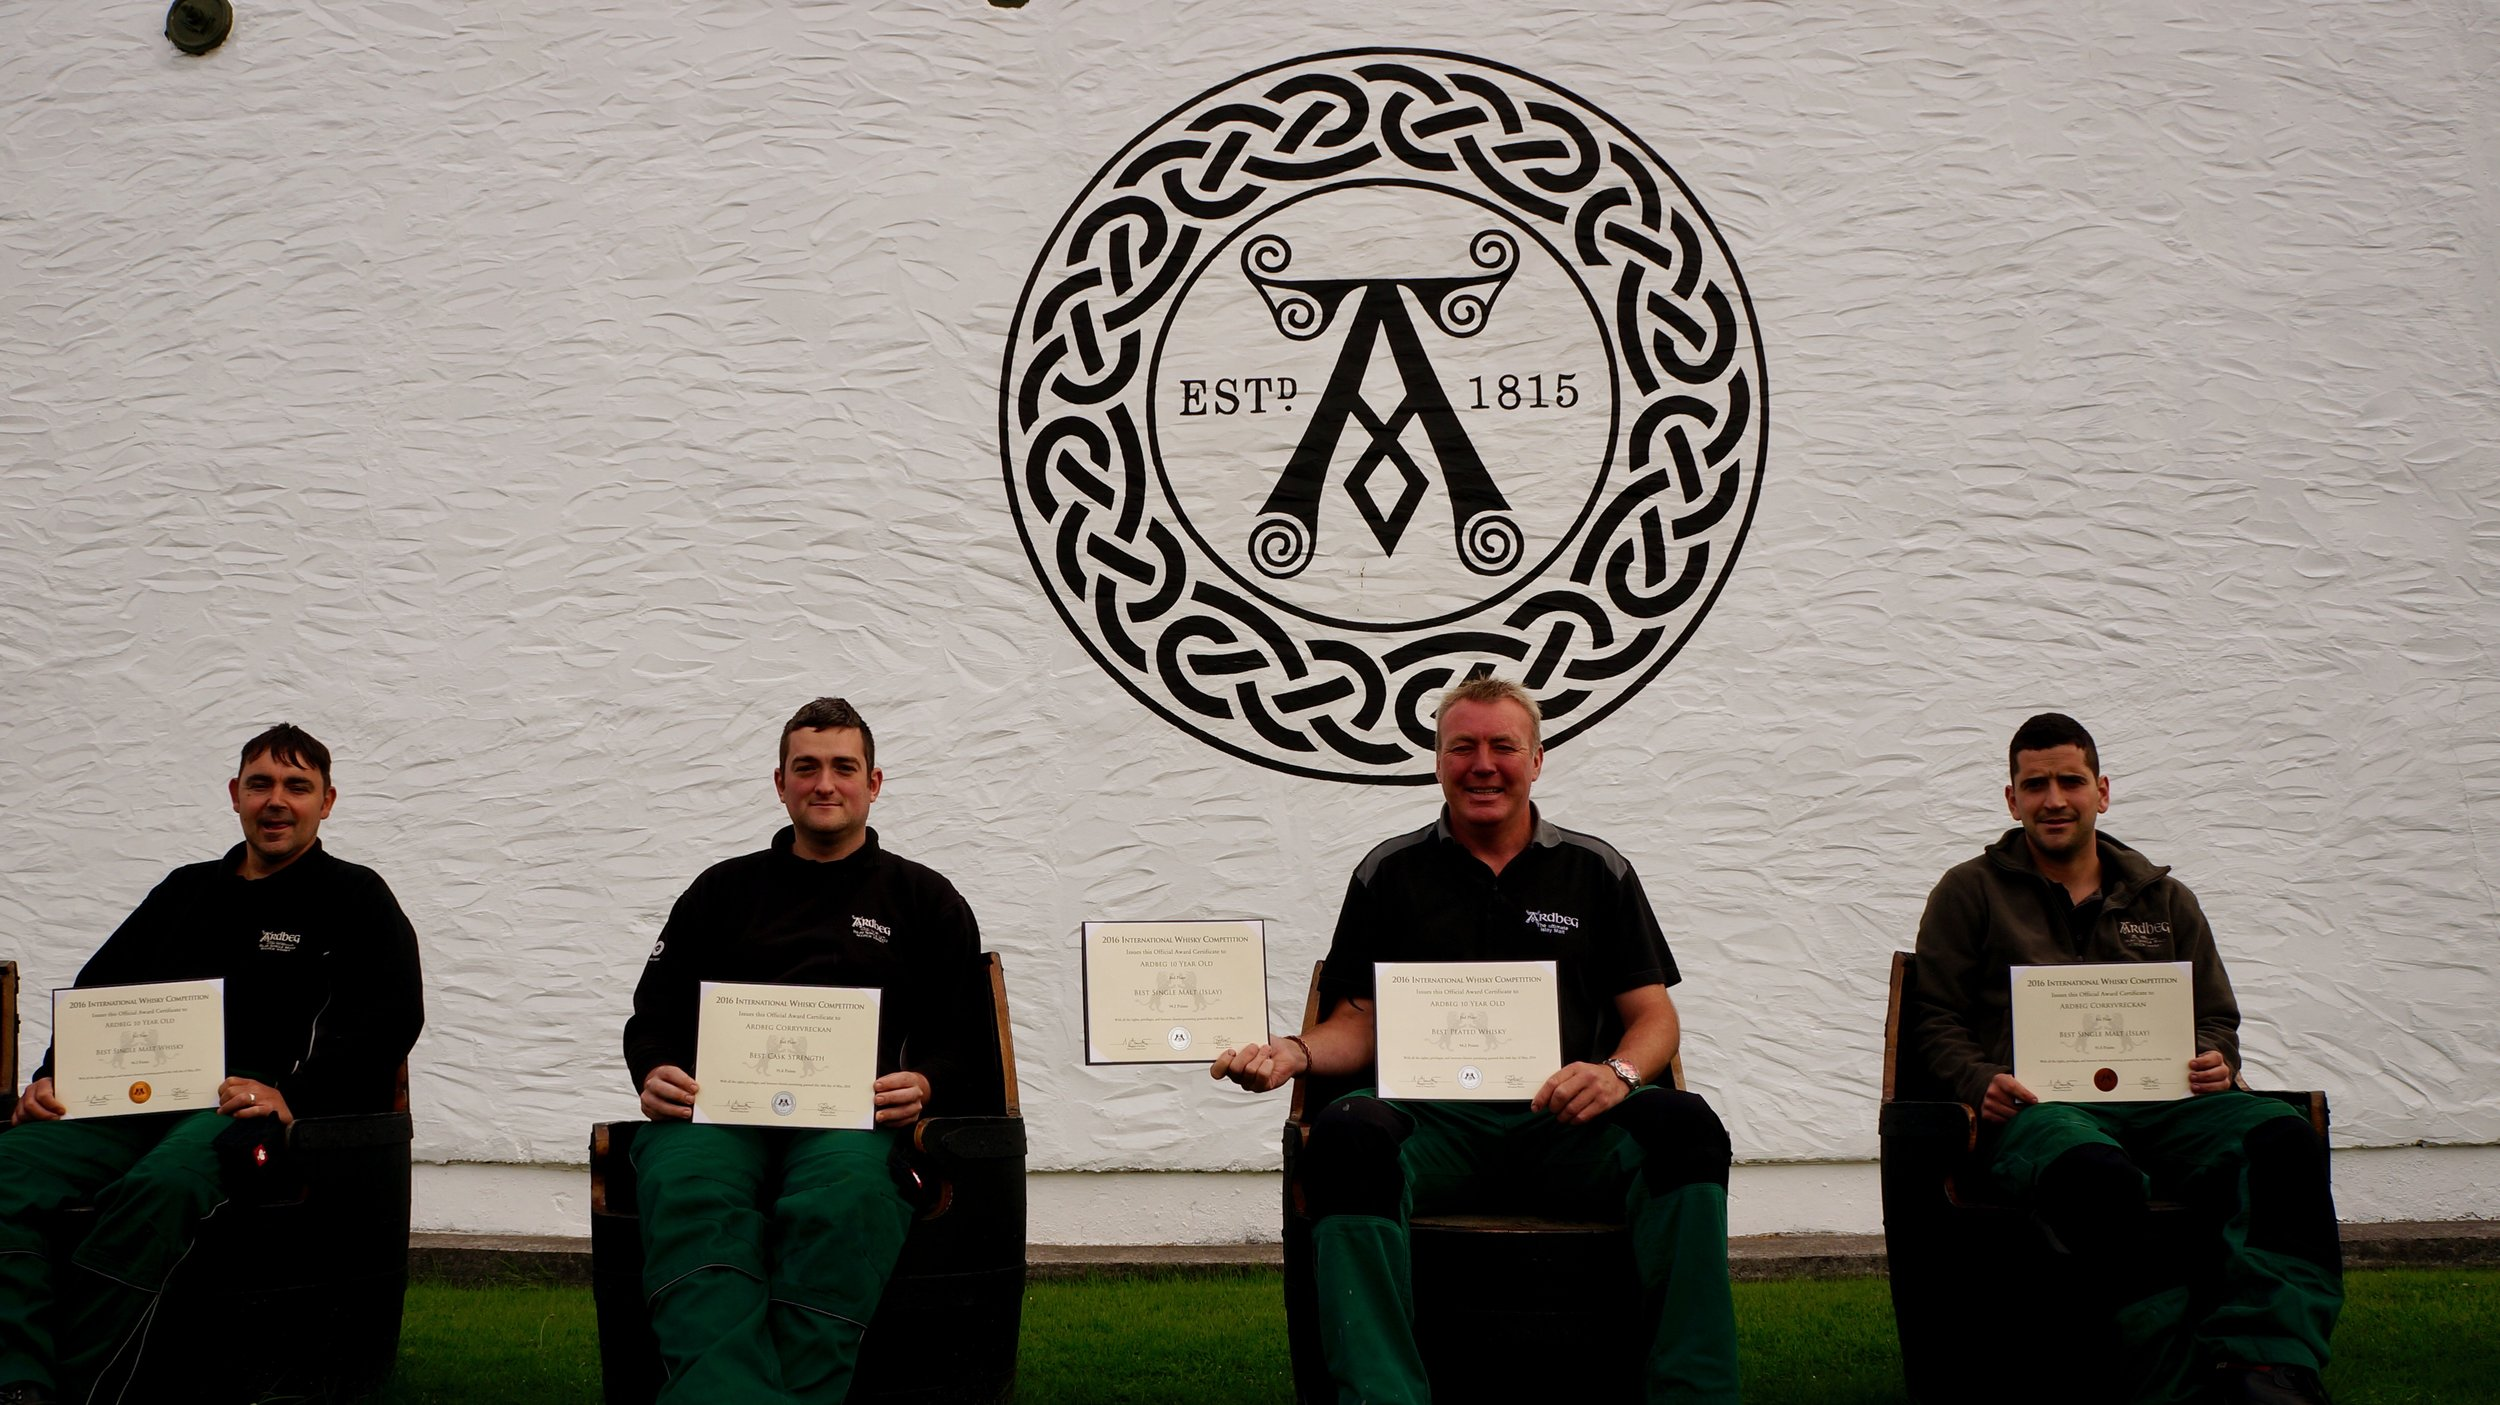 The Ardbeg Boys